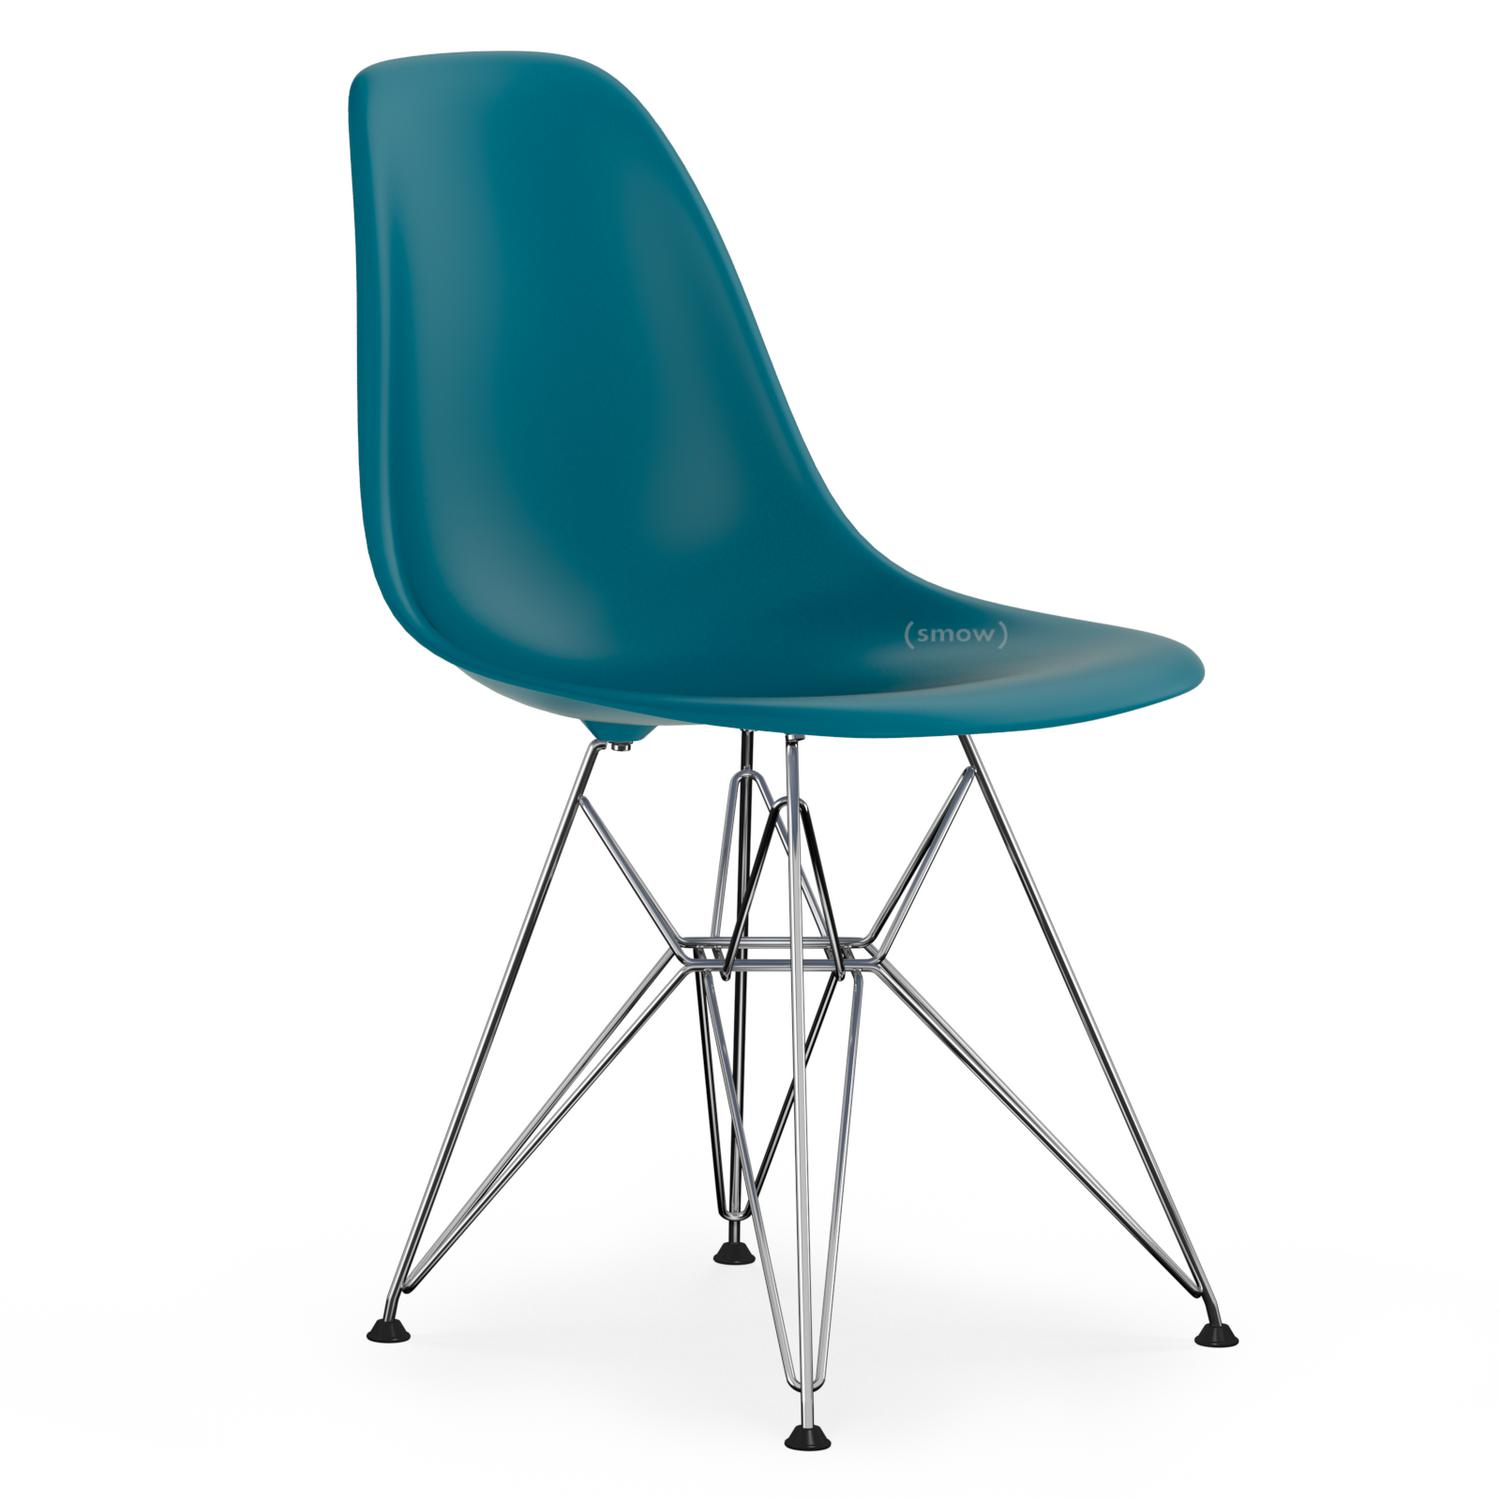 Eames chair vitra buy the vitra dsw eames plastic side for Chaise rar eames vitra